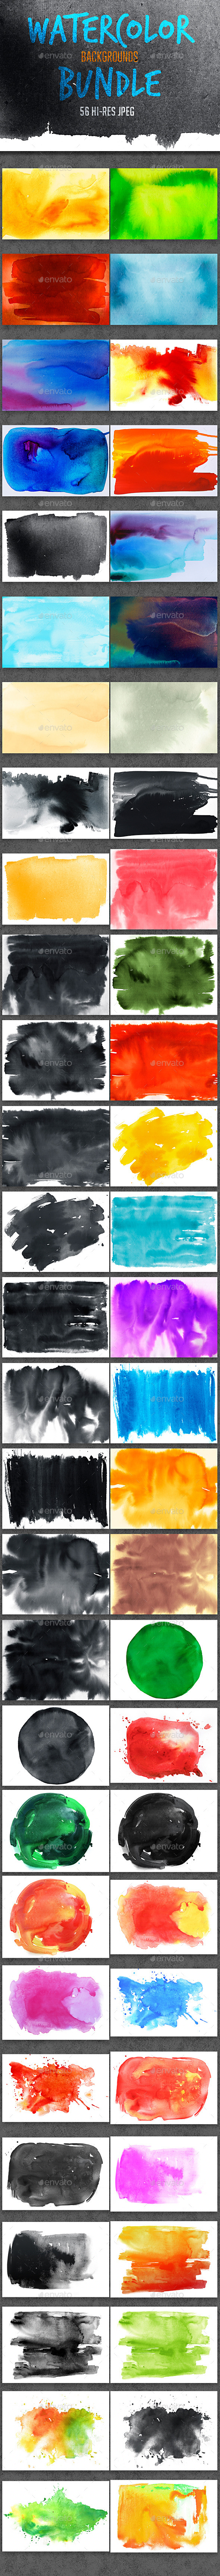 Watercolor Backgrounds Bundle - Backgrounds Graphics